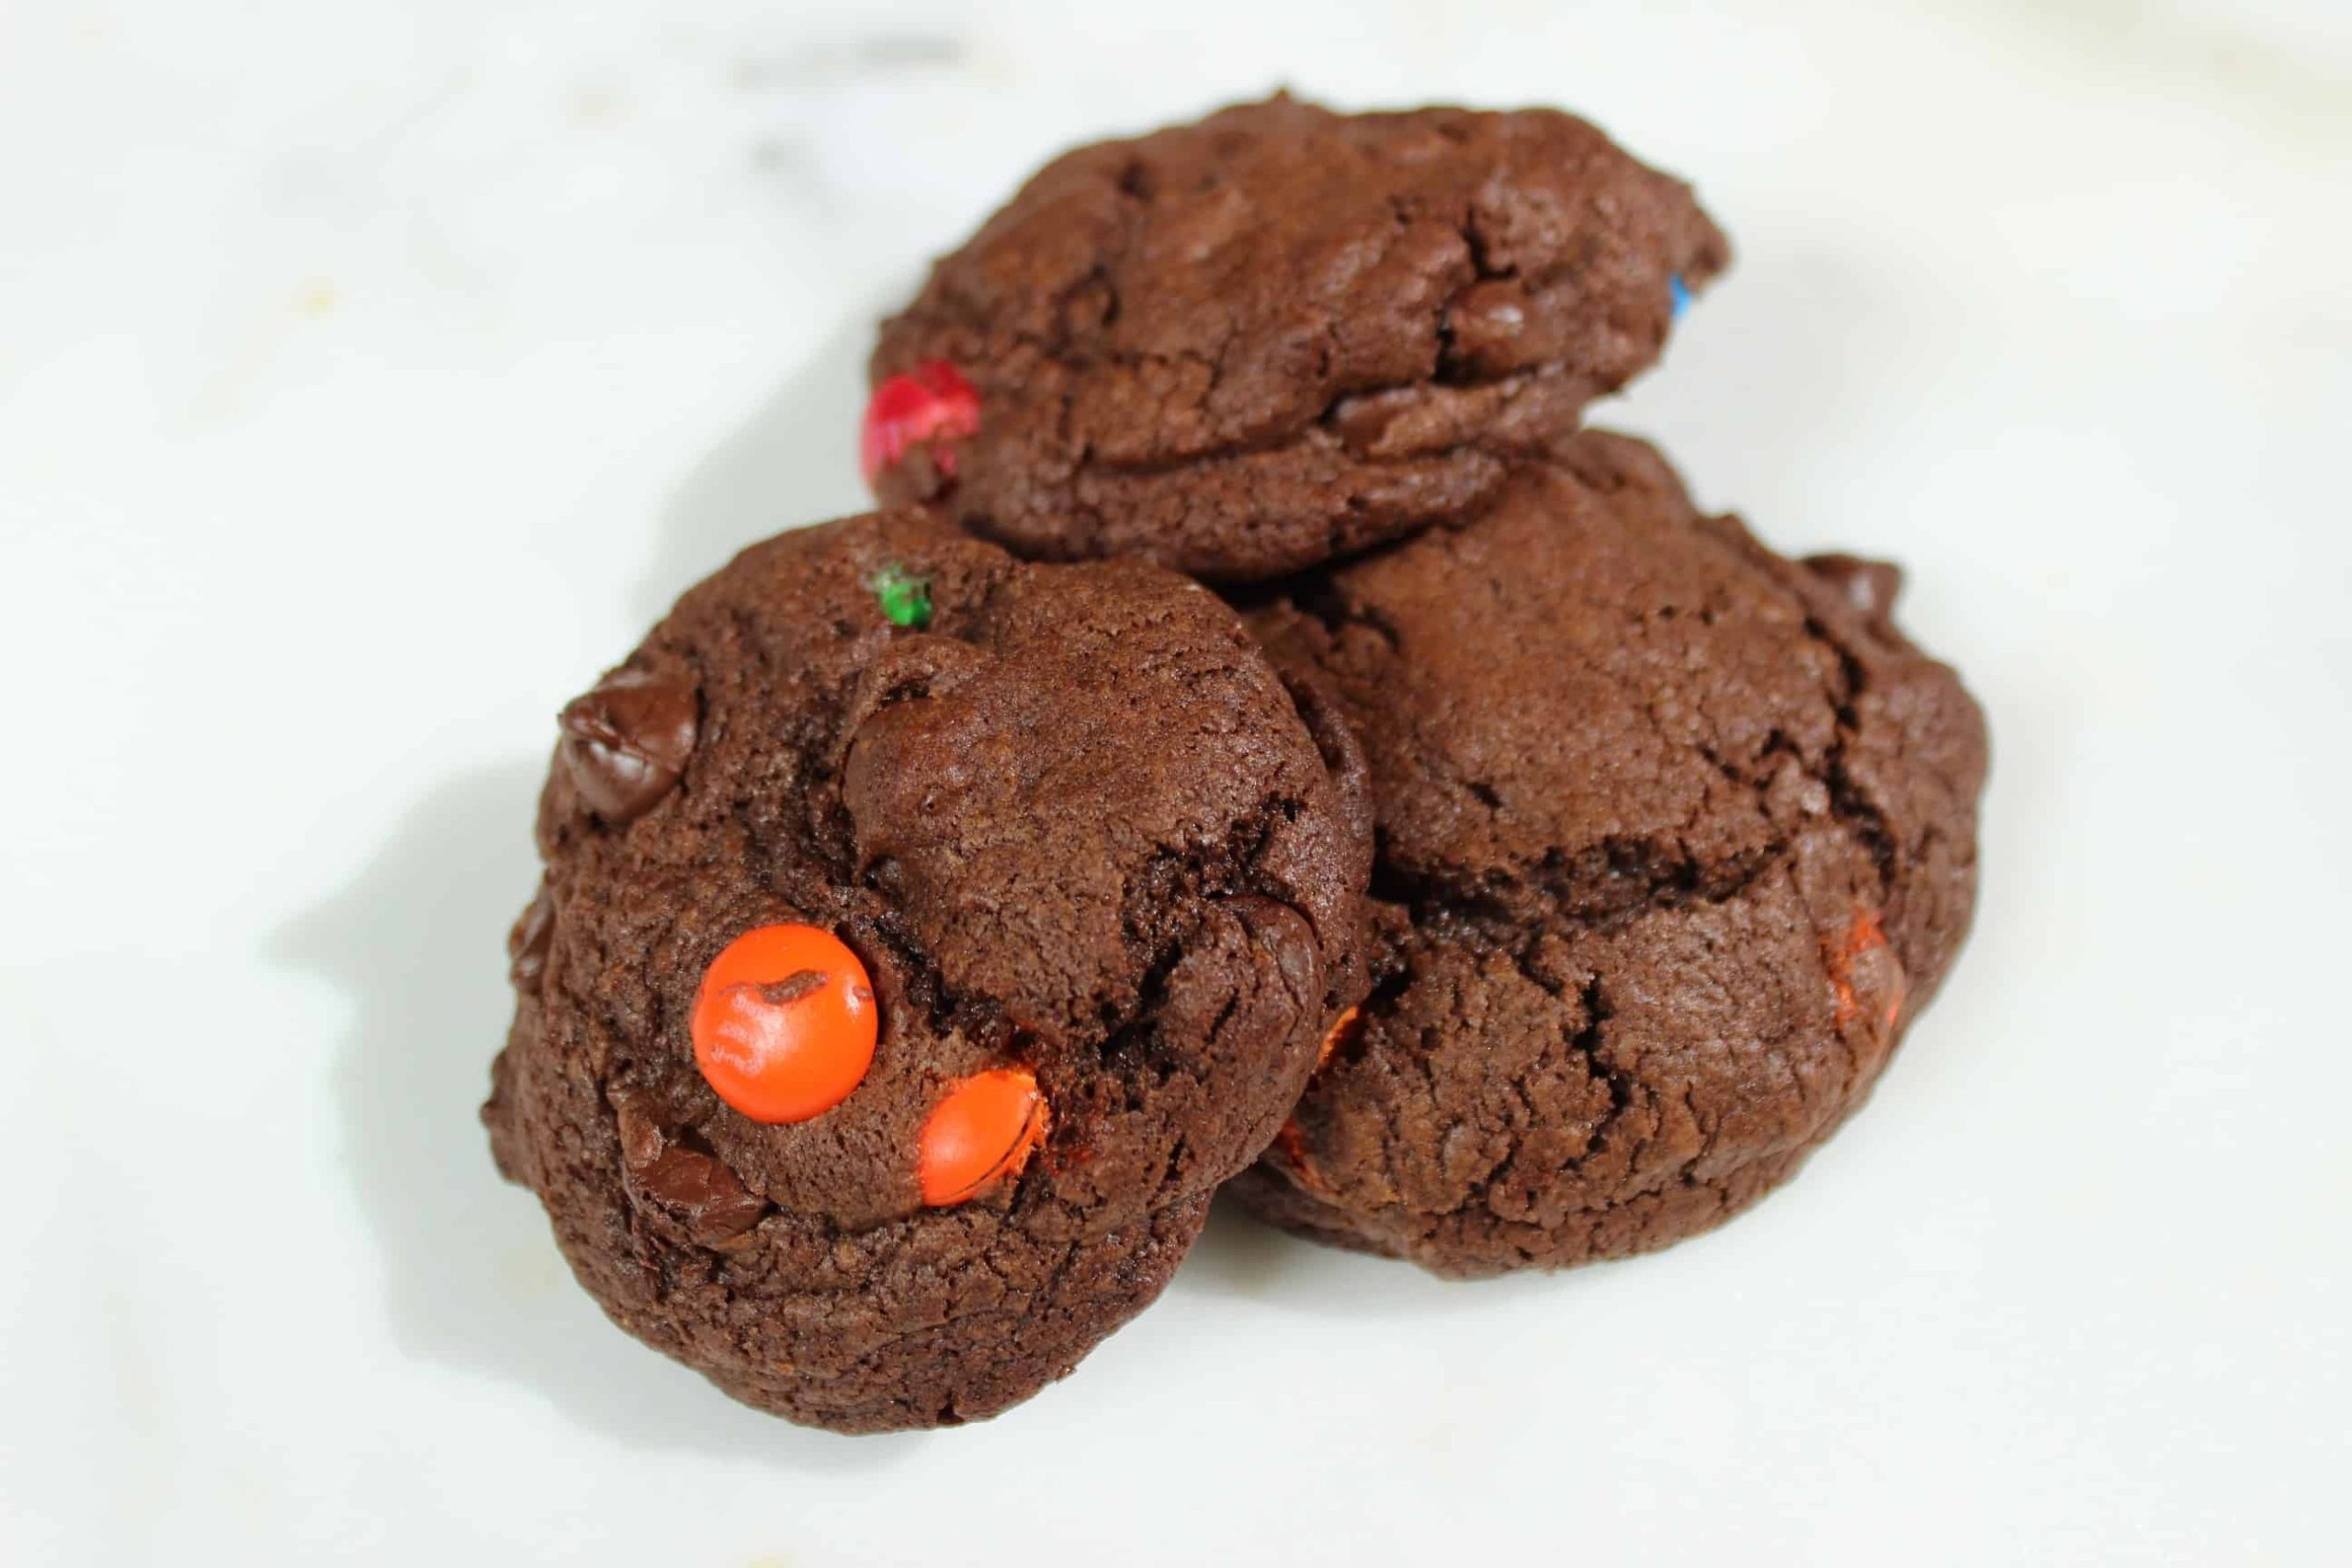 Chocolate Chip Cookies with M&M's!